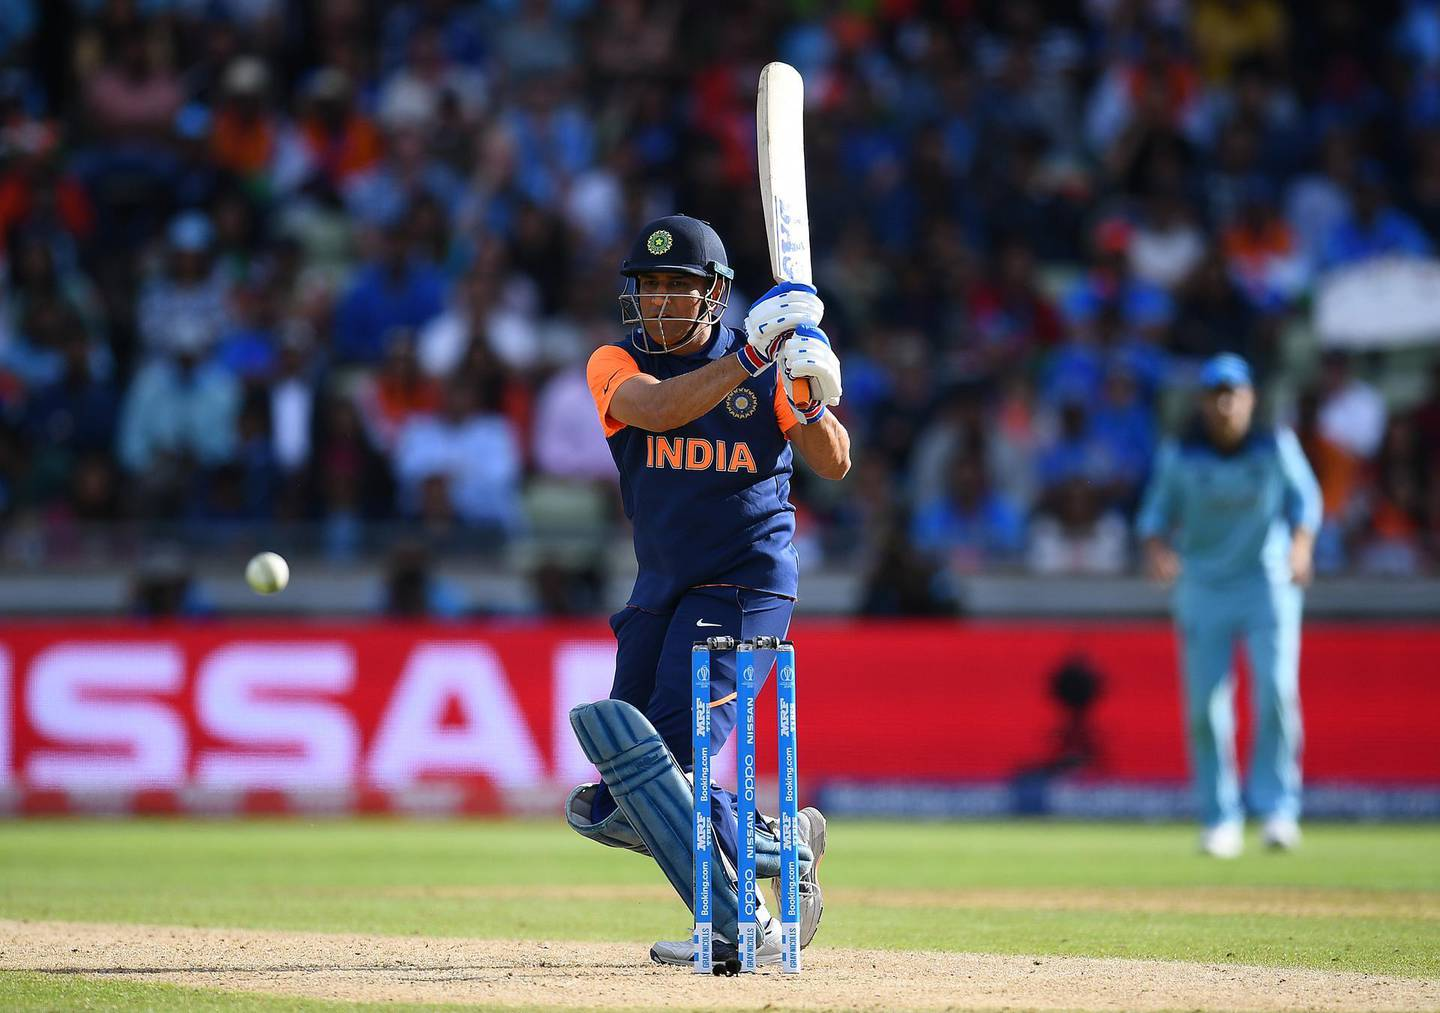 BIRMINGHAM, ENGLAND - JUNE 30:  MS Dhoni of India in action batting during the Group Stage match of the ICC Cricket World Cup 2019 between England and India at Edgbaston on June 30, 2019 in Birmingham, England. (Photo by Clive Mason/Getty Images)